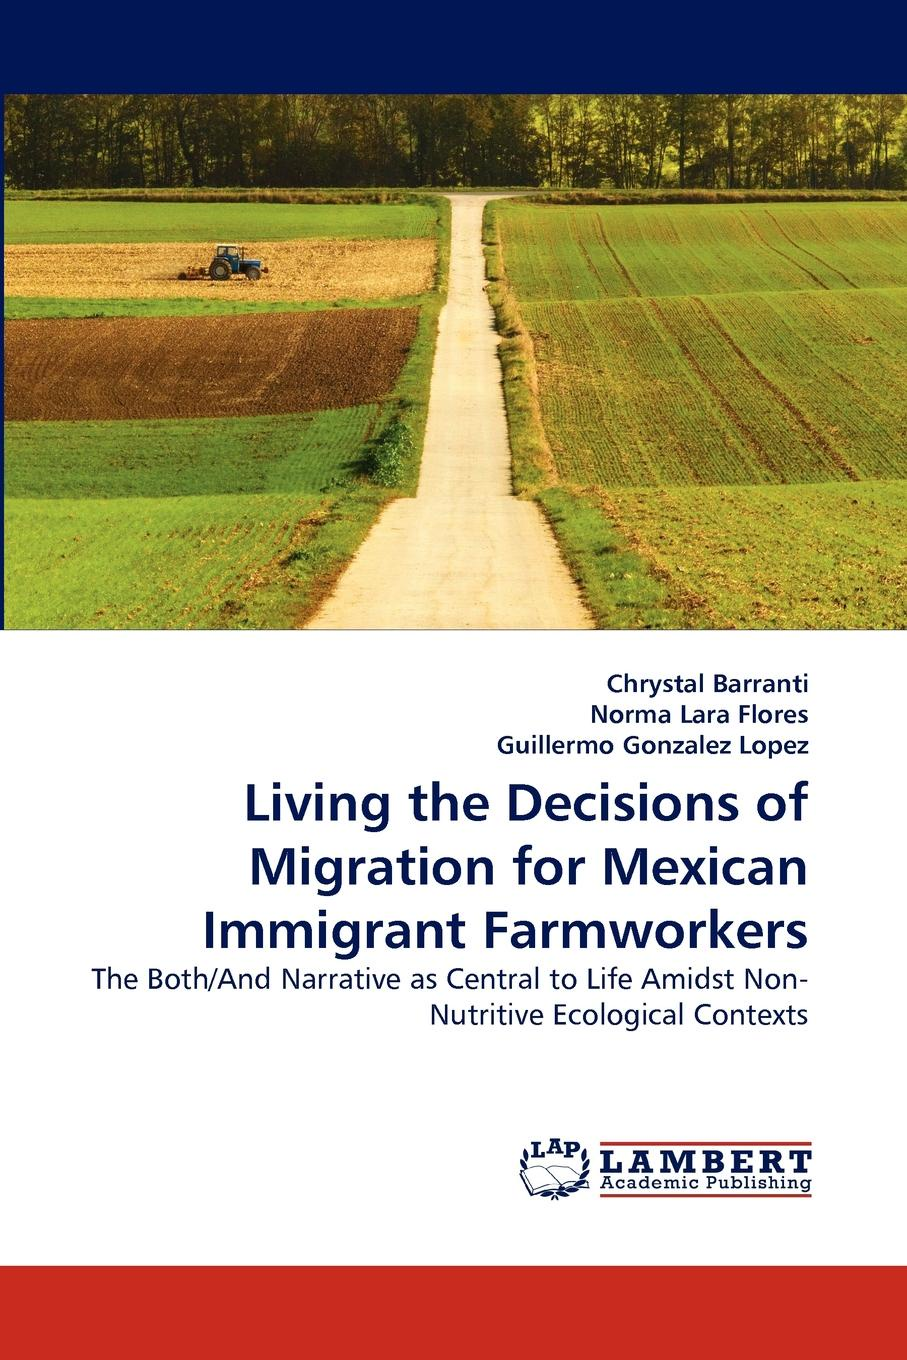 Chrystal Barranti, Norma Lara Flores, Guillermo Gonzalez Lopez Living the Decisions of Migration for Mexican Immigrant Farmworkers timothy henderson j beyond borders a history of mexican migration to the united states